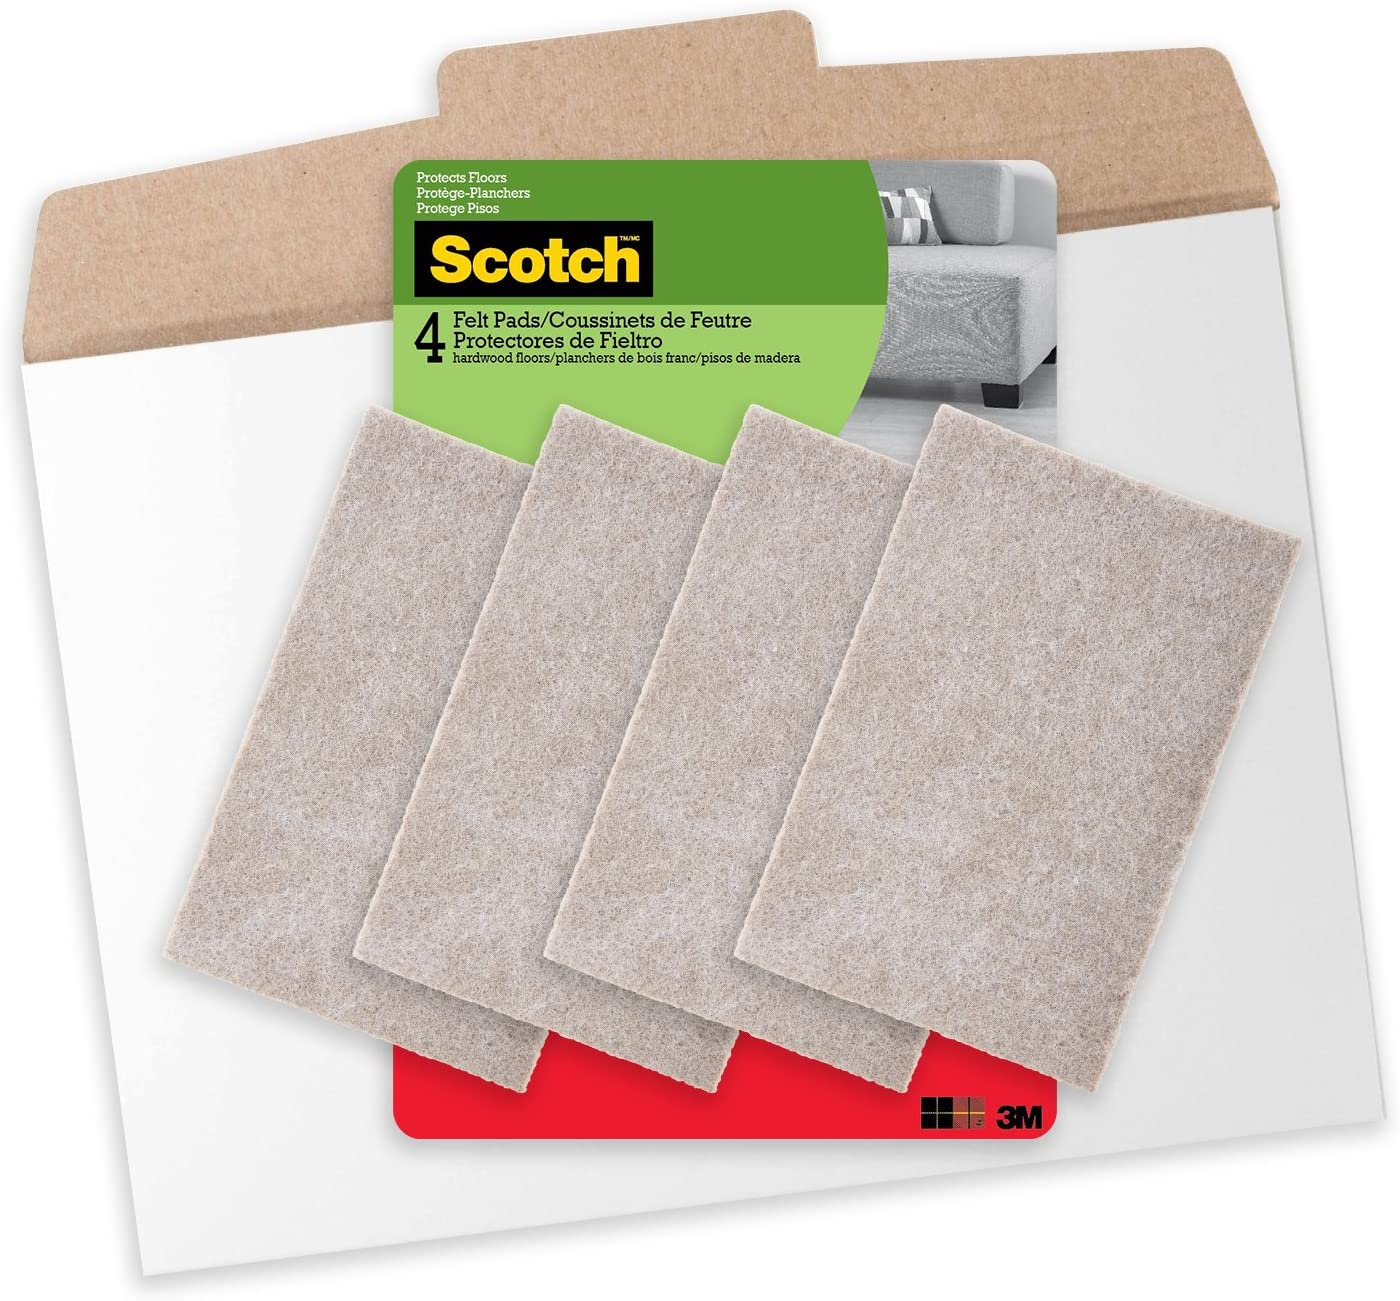 Scotch 4 x 6 inch Felt Pads in Easy to Open Packaging, 4 Pads, Beige